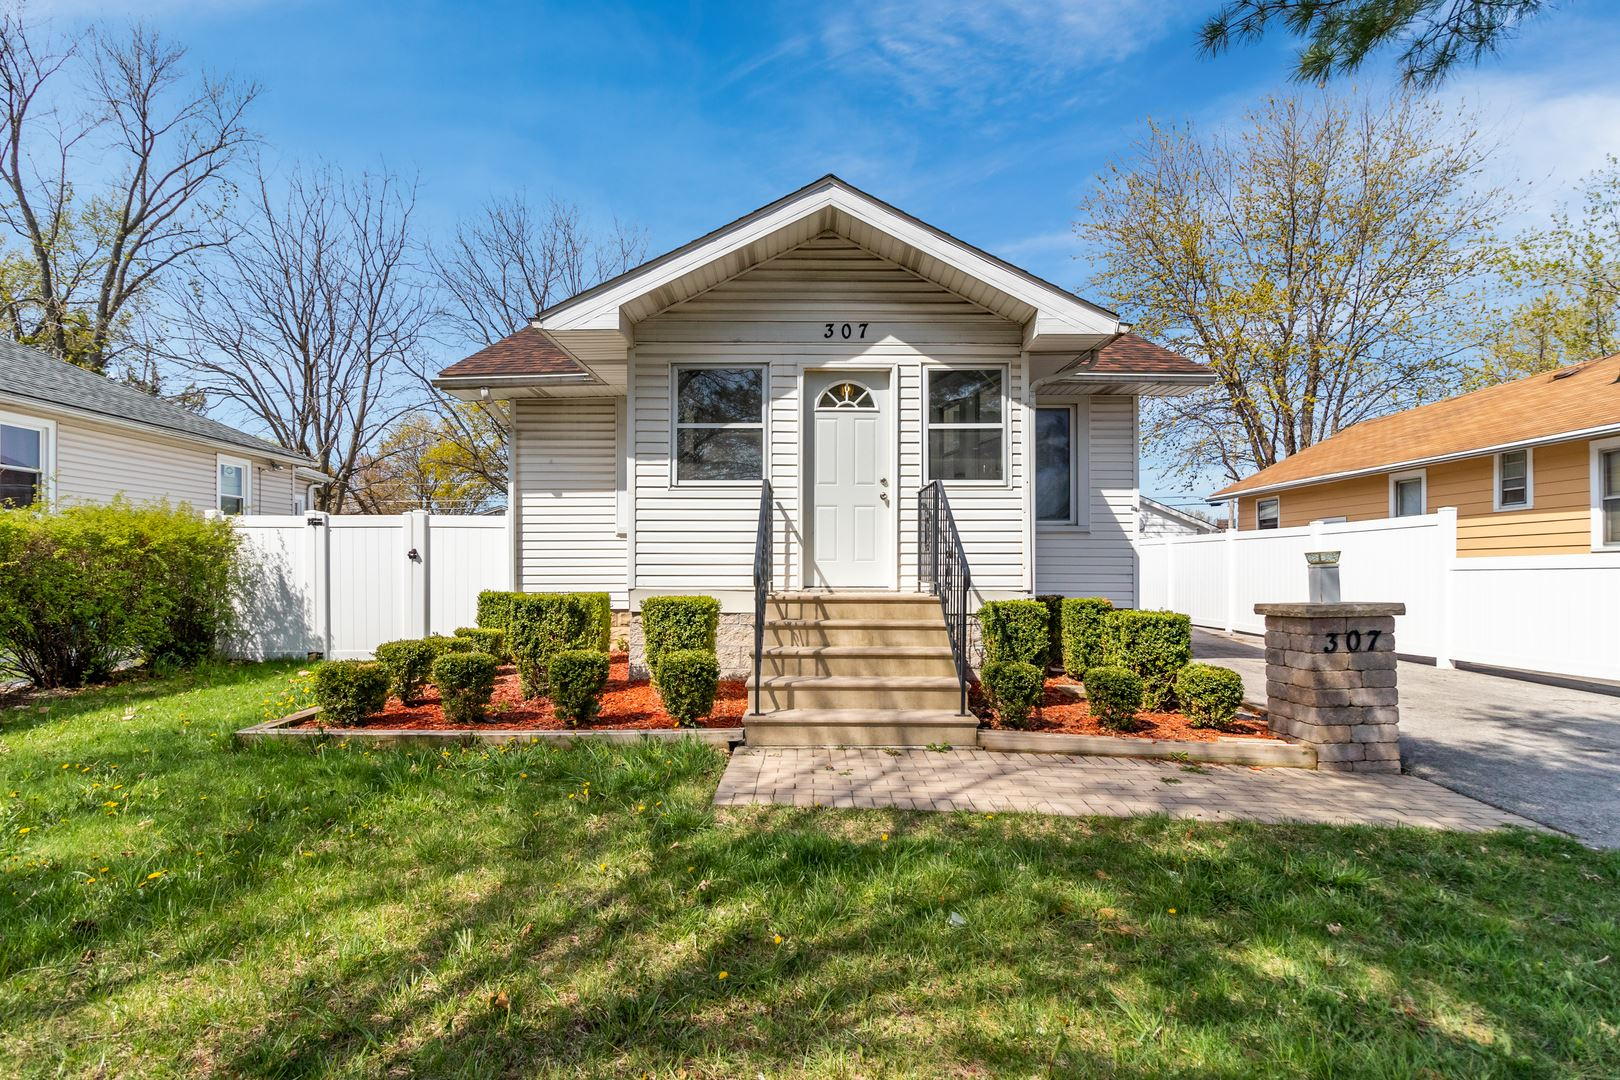 Photo of 307 S Margaret Street, Joliet, IL 60436 (MLS # 11057642)